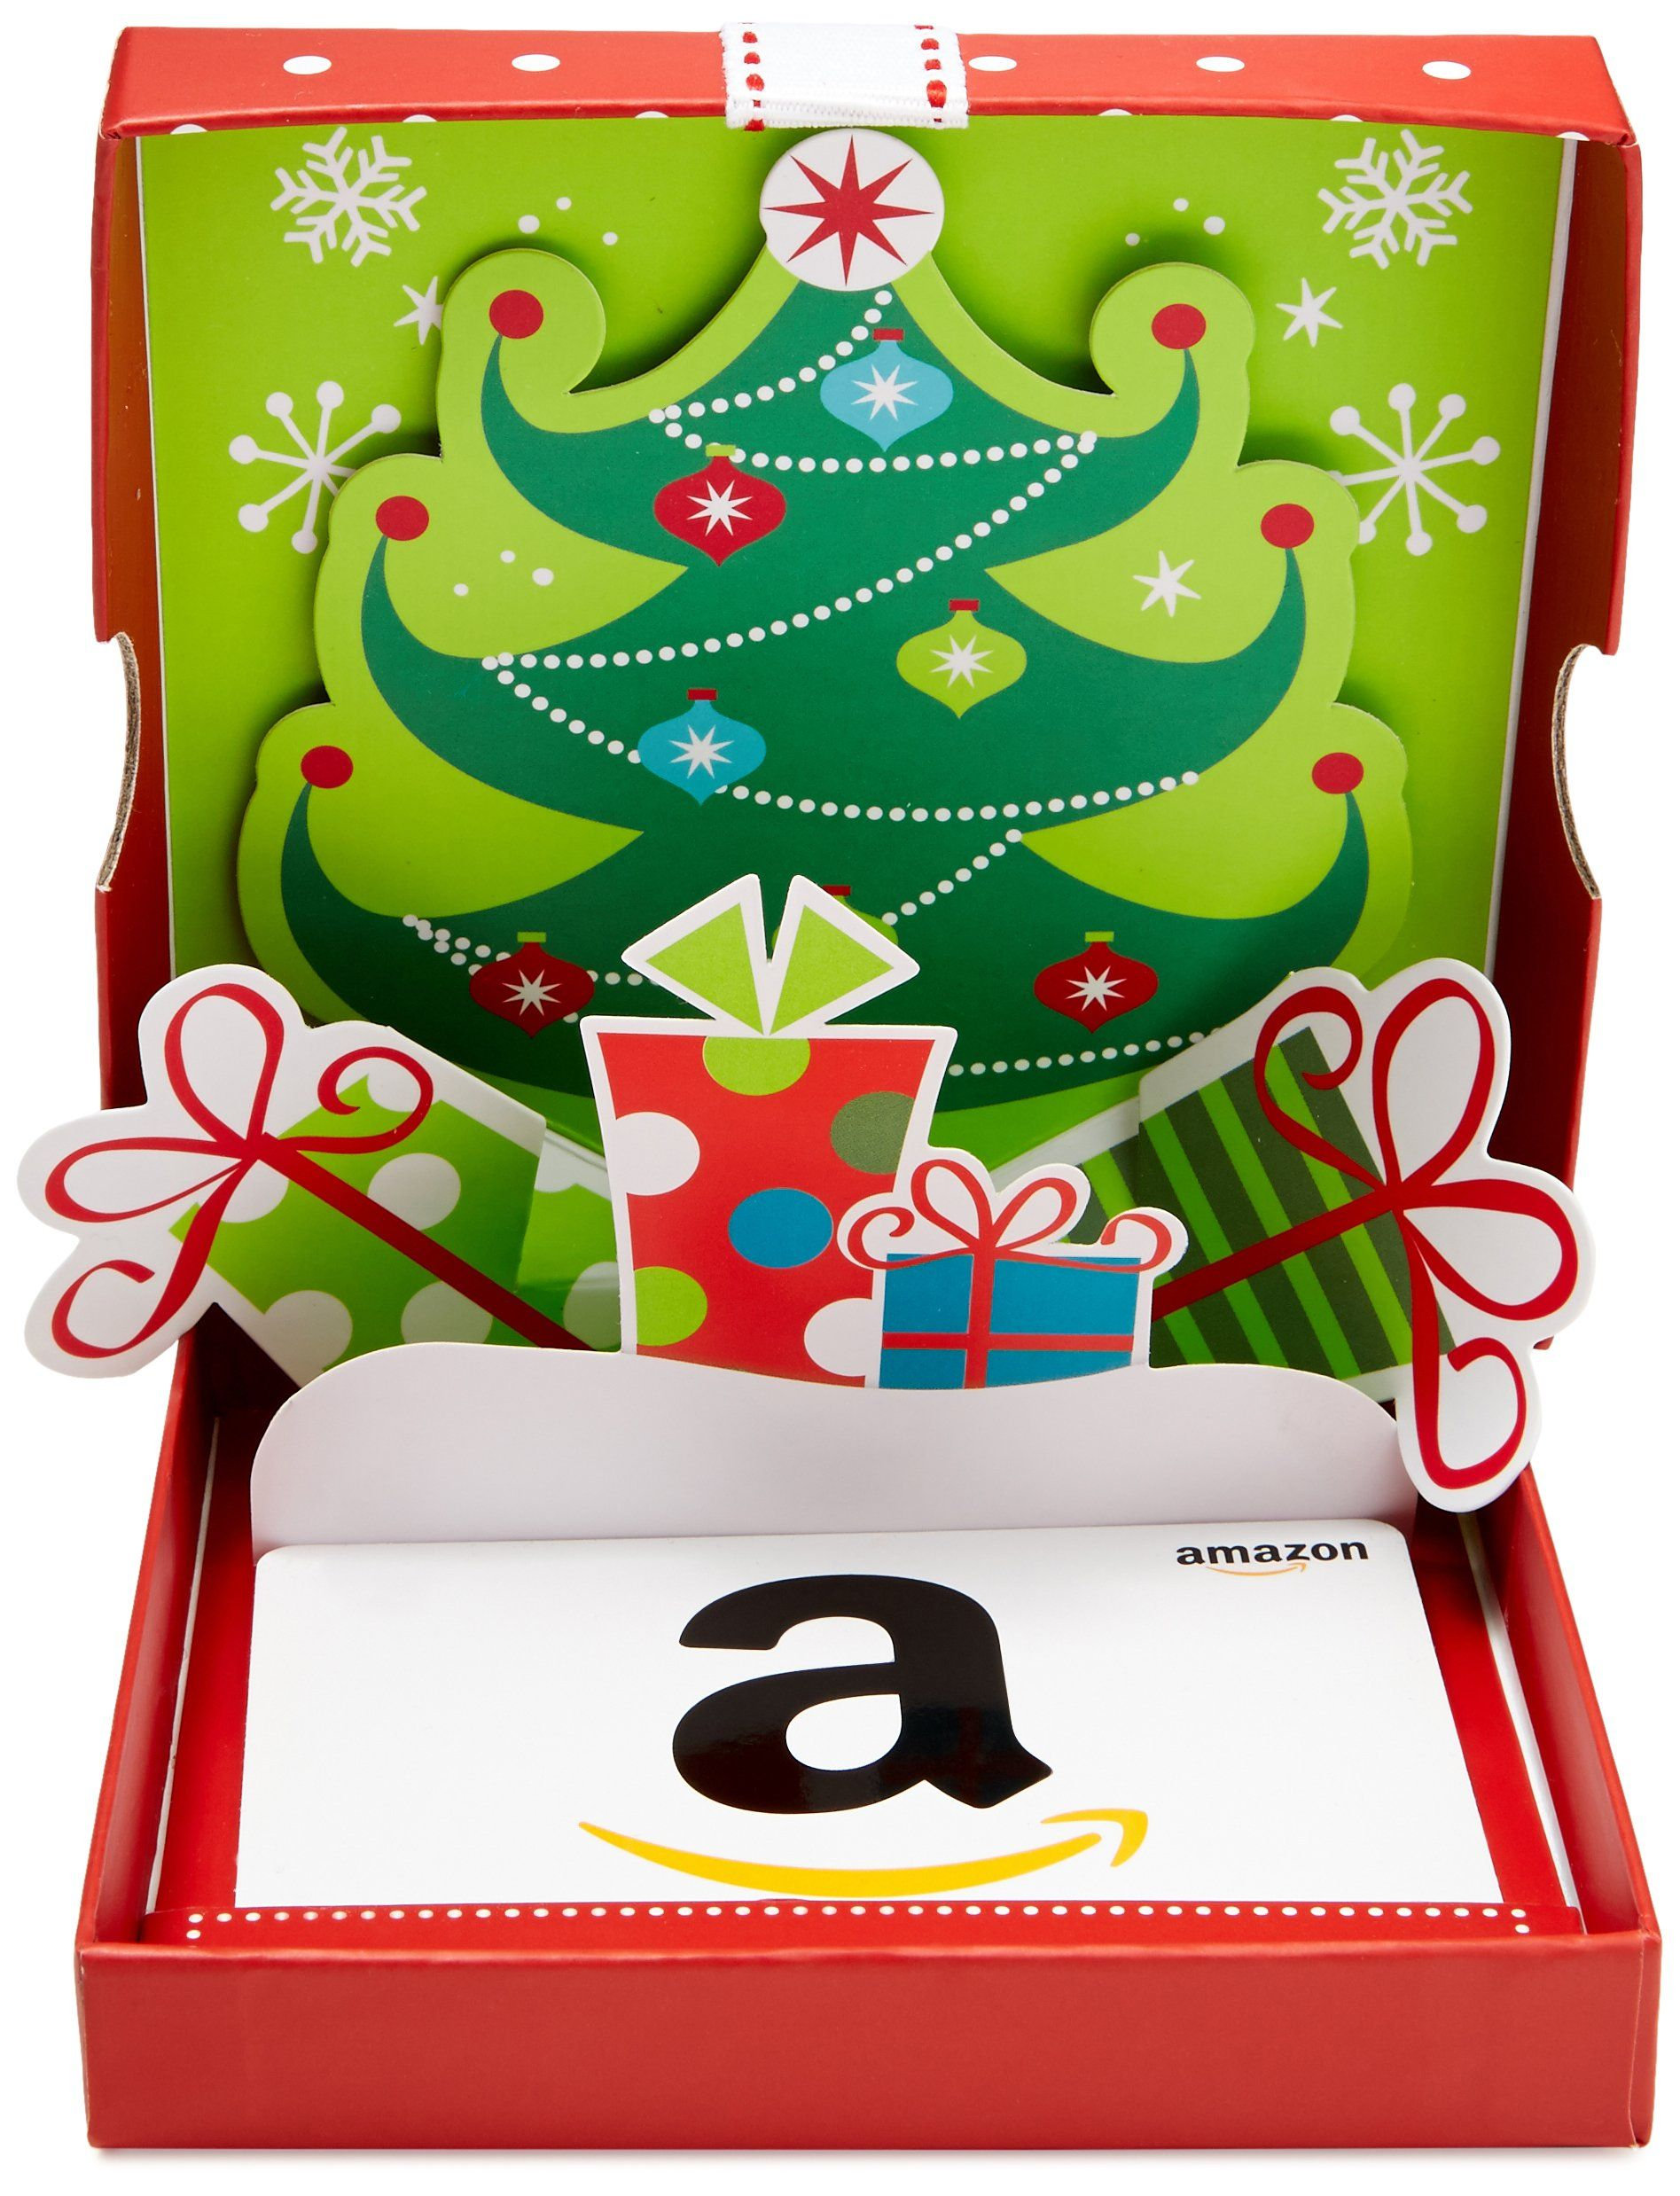 Gift card in a holiday popup box check this